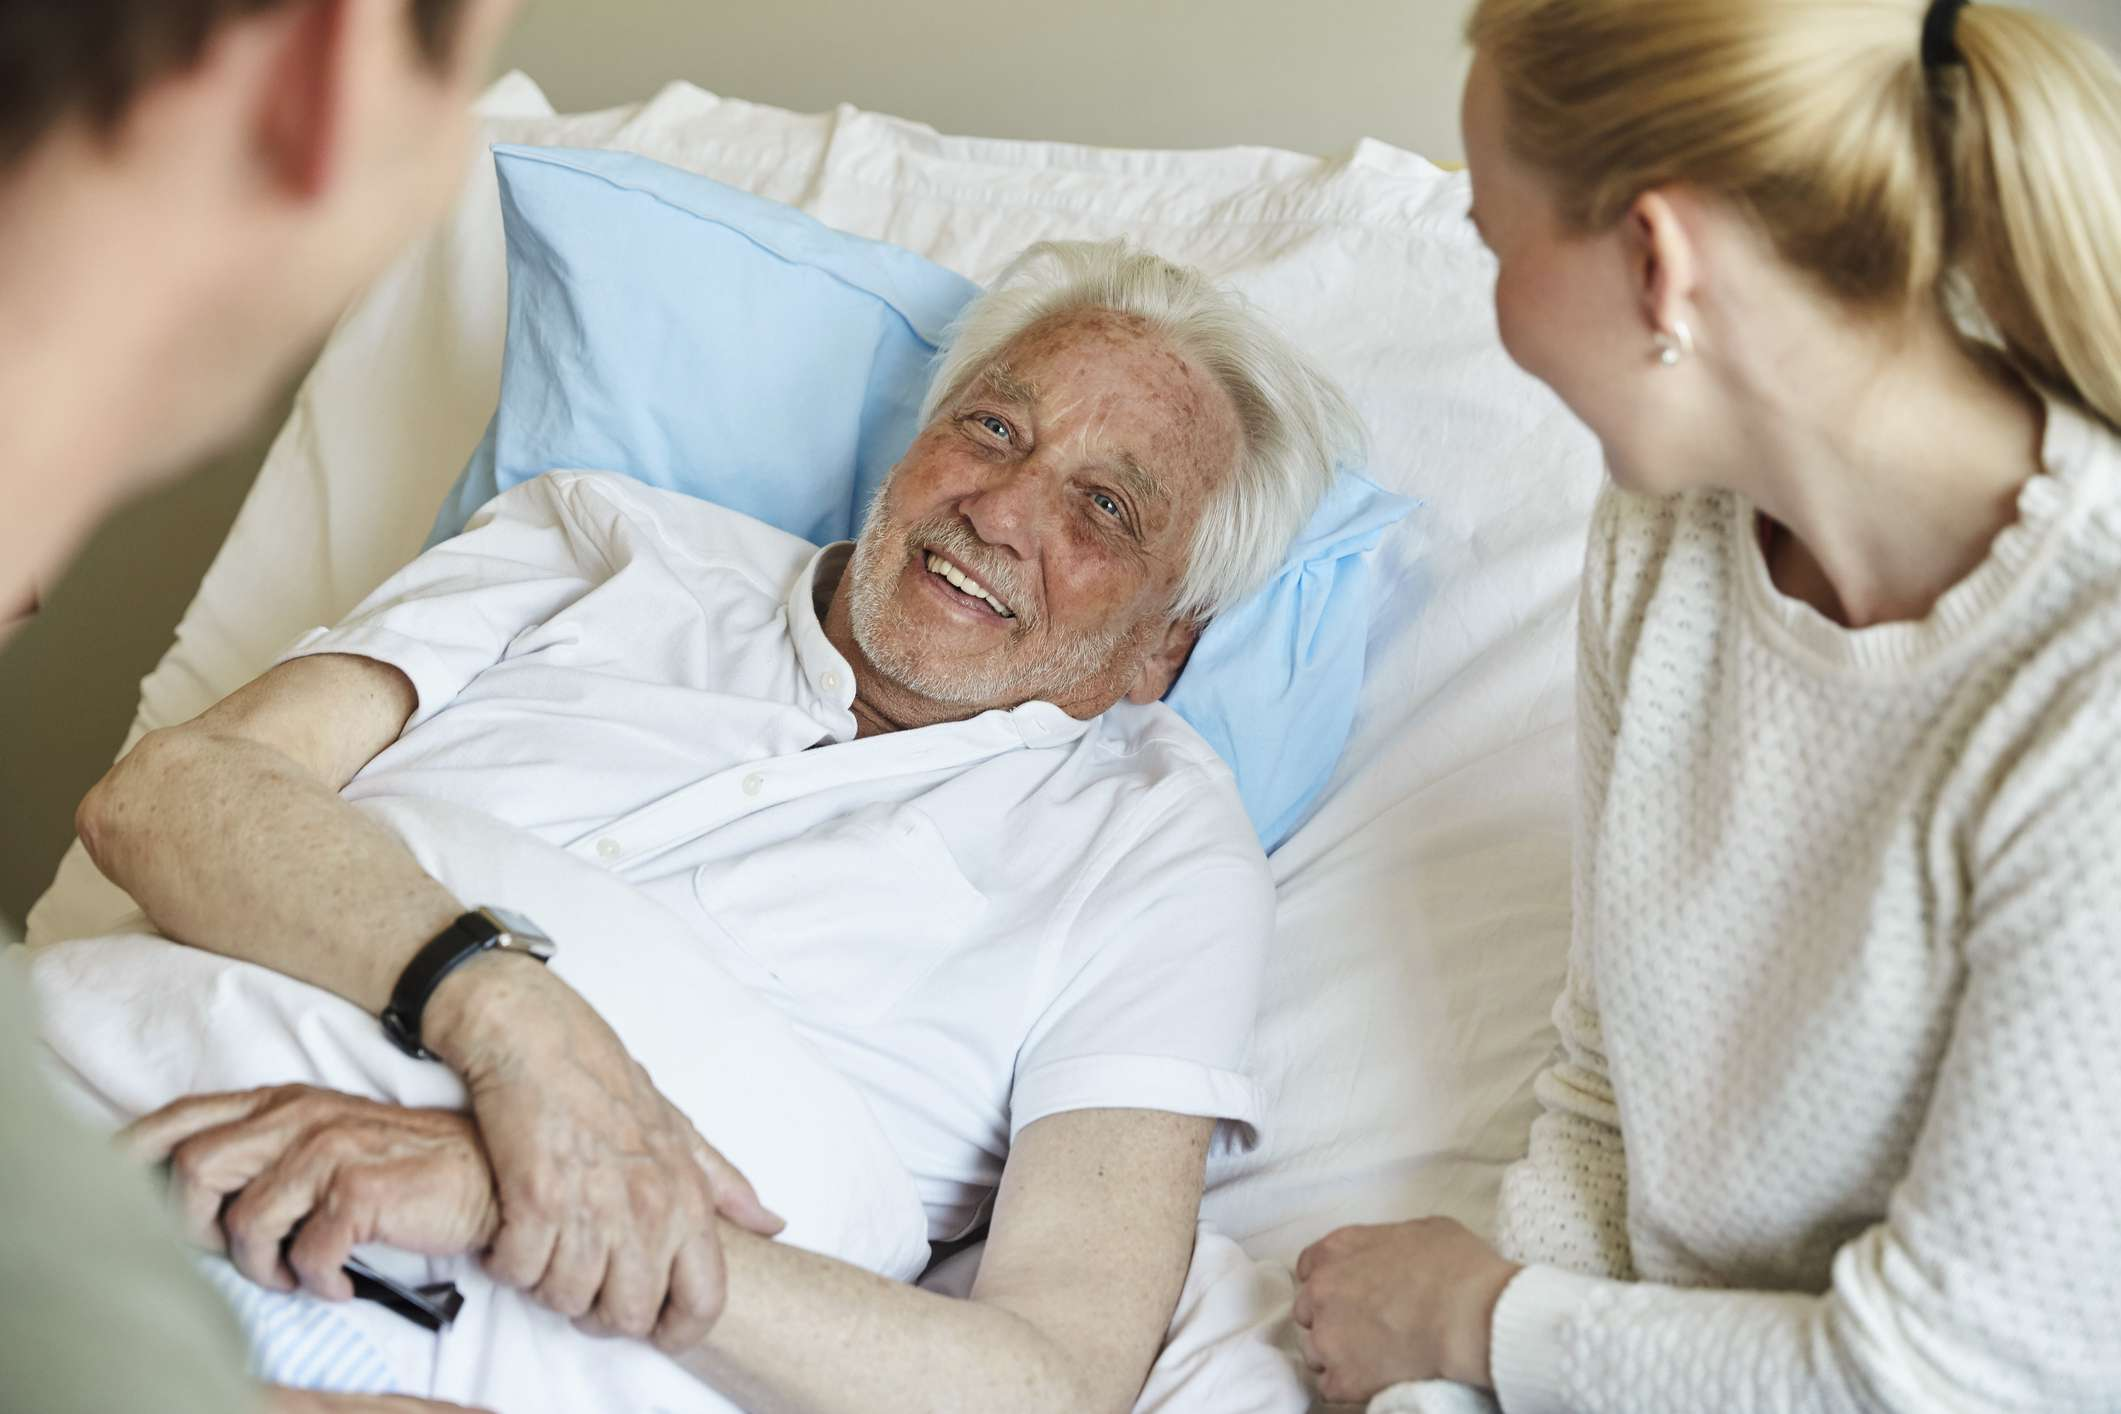 Man with stomach cancer in hospital bed